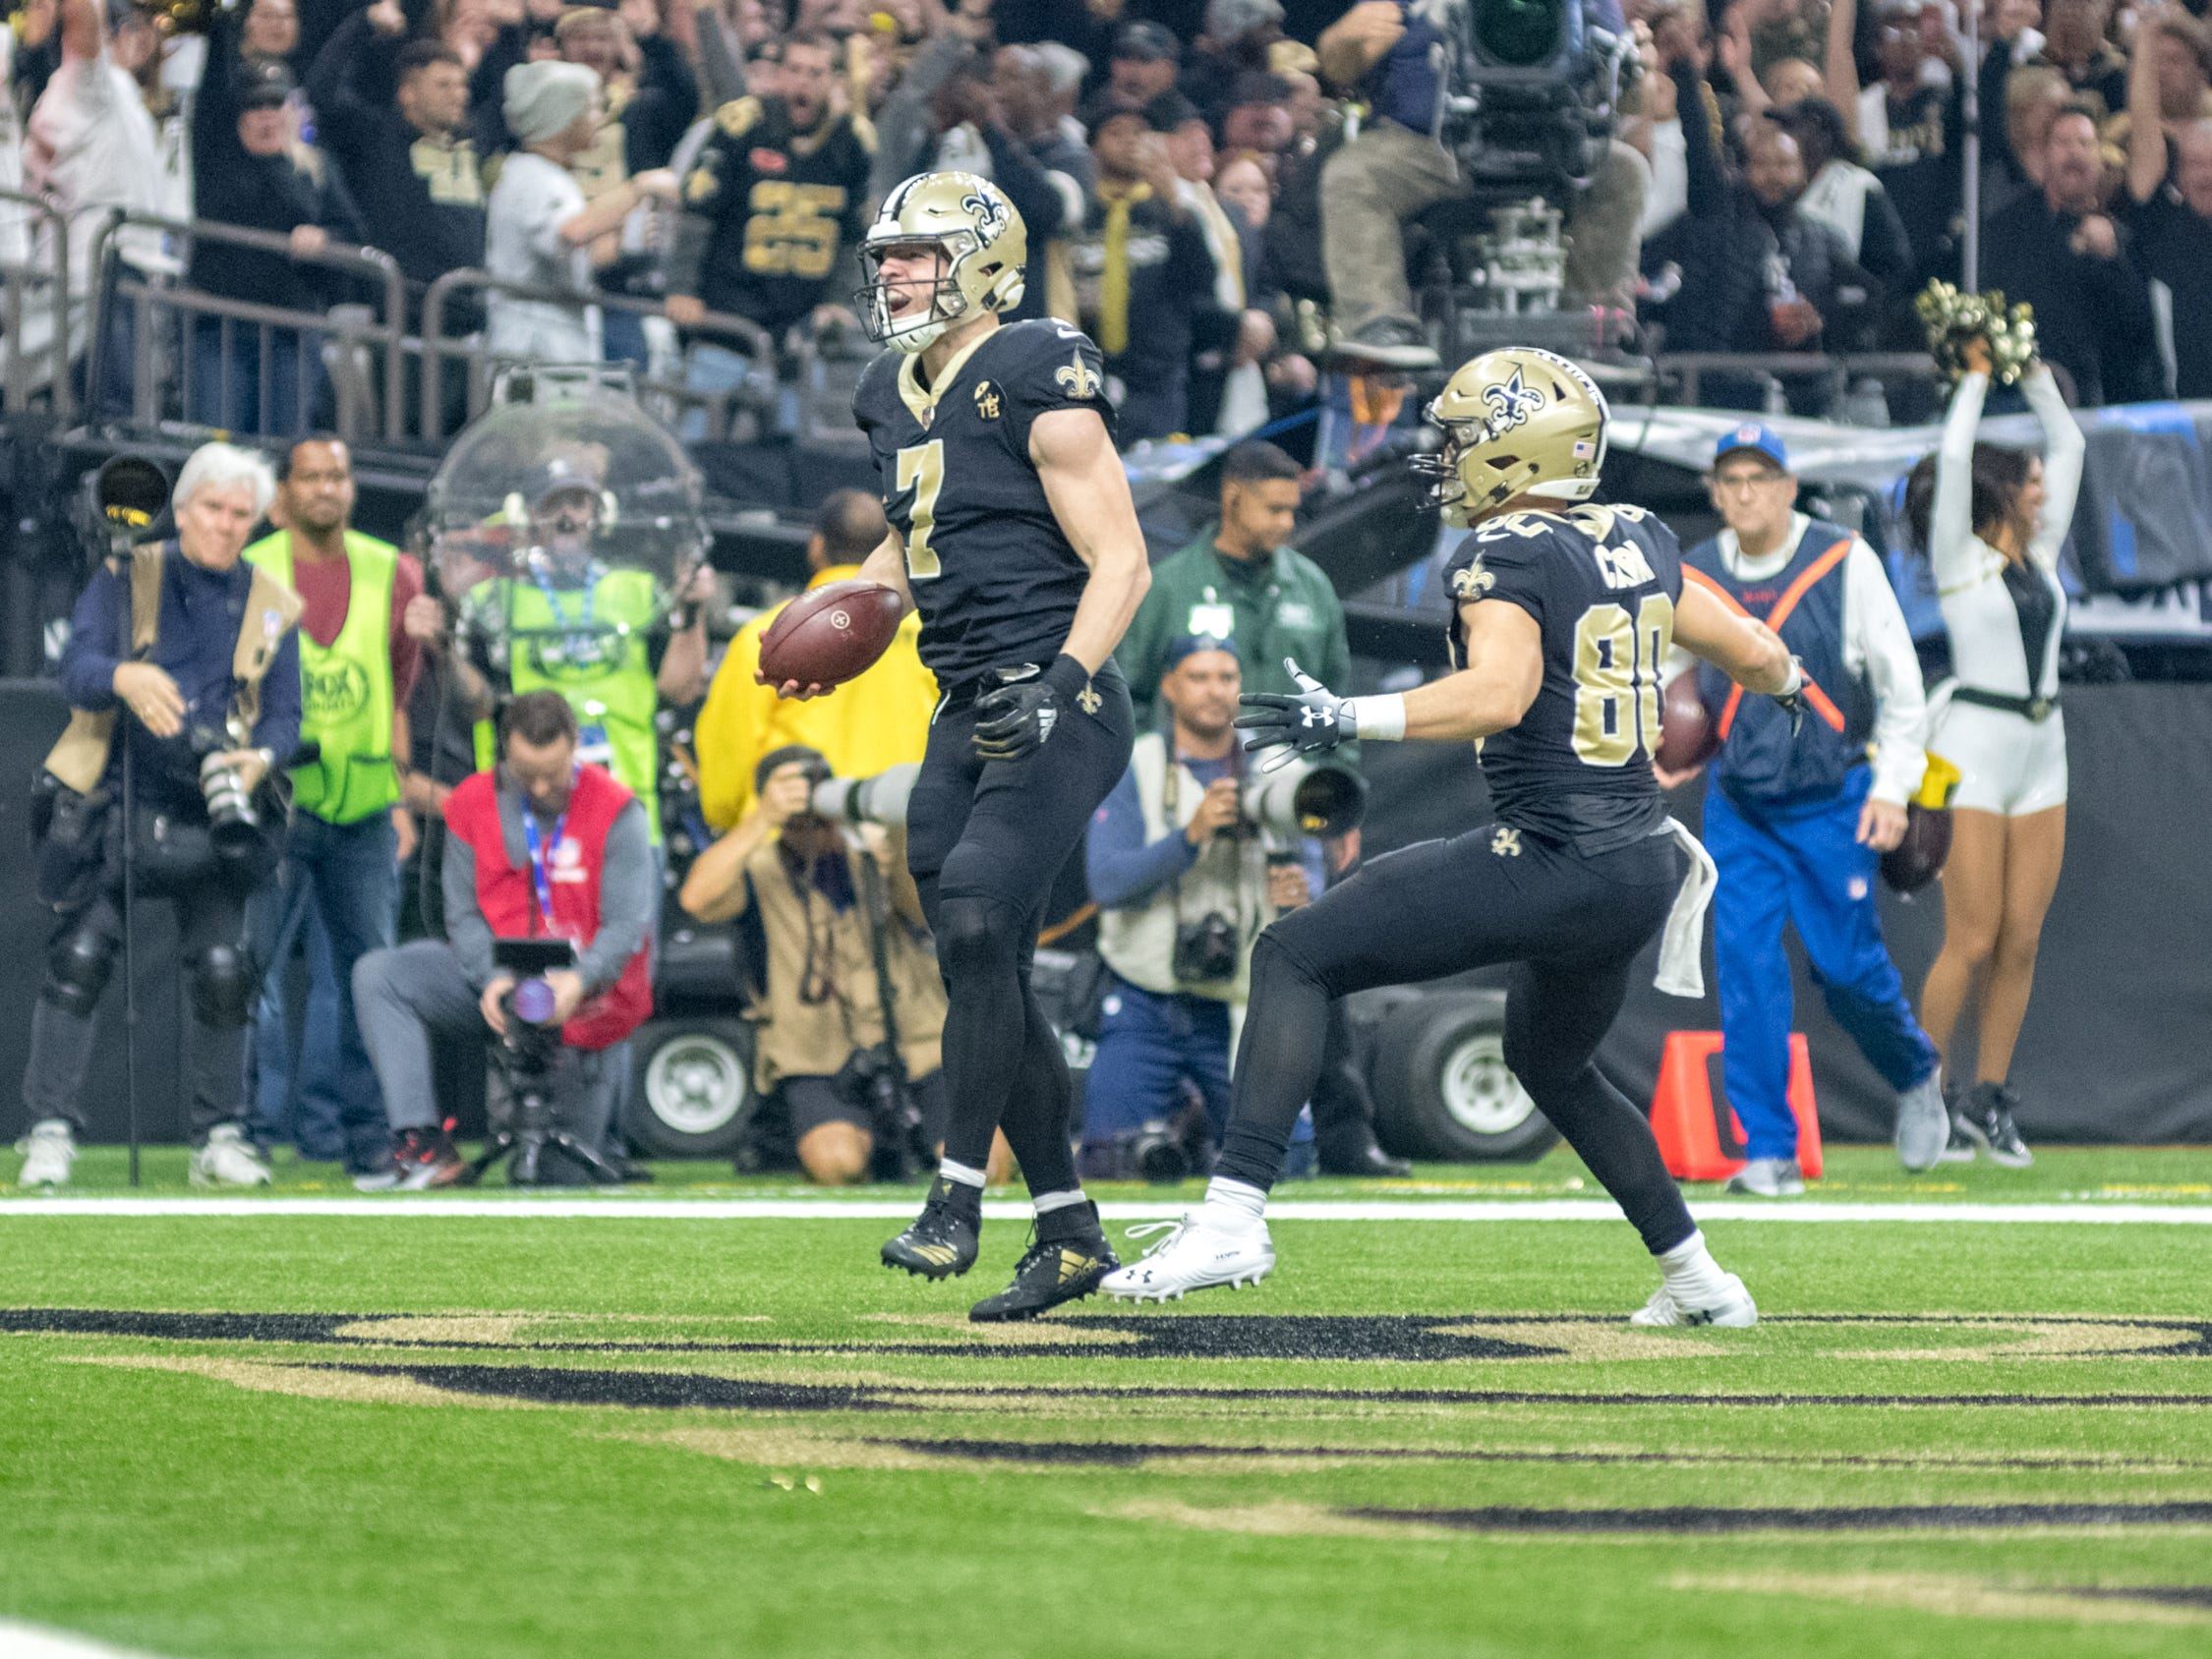 Taysom Hill scores a touchdown during the NFC Championship playoff football game between the New Orleans Saints and the Los Angeles Rams at the Mercedes-Benz Superdome in New Orleans. Sunday, Jan. 20, 2019.